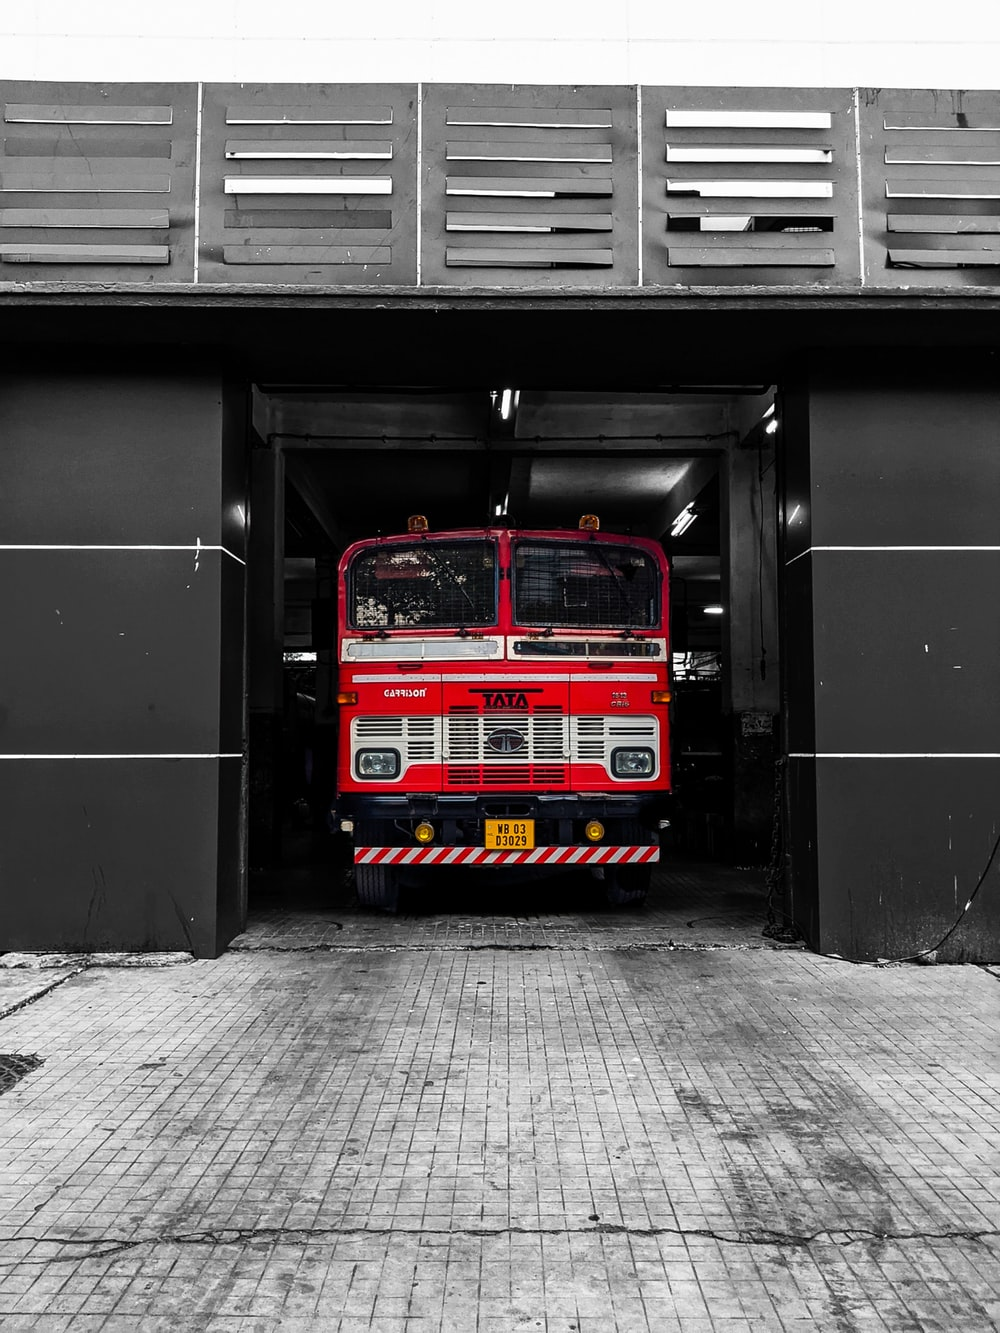 red blue and yellow bus in a tunnel